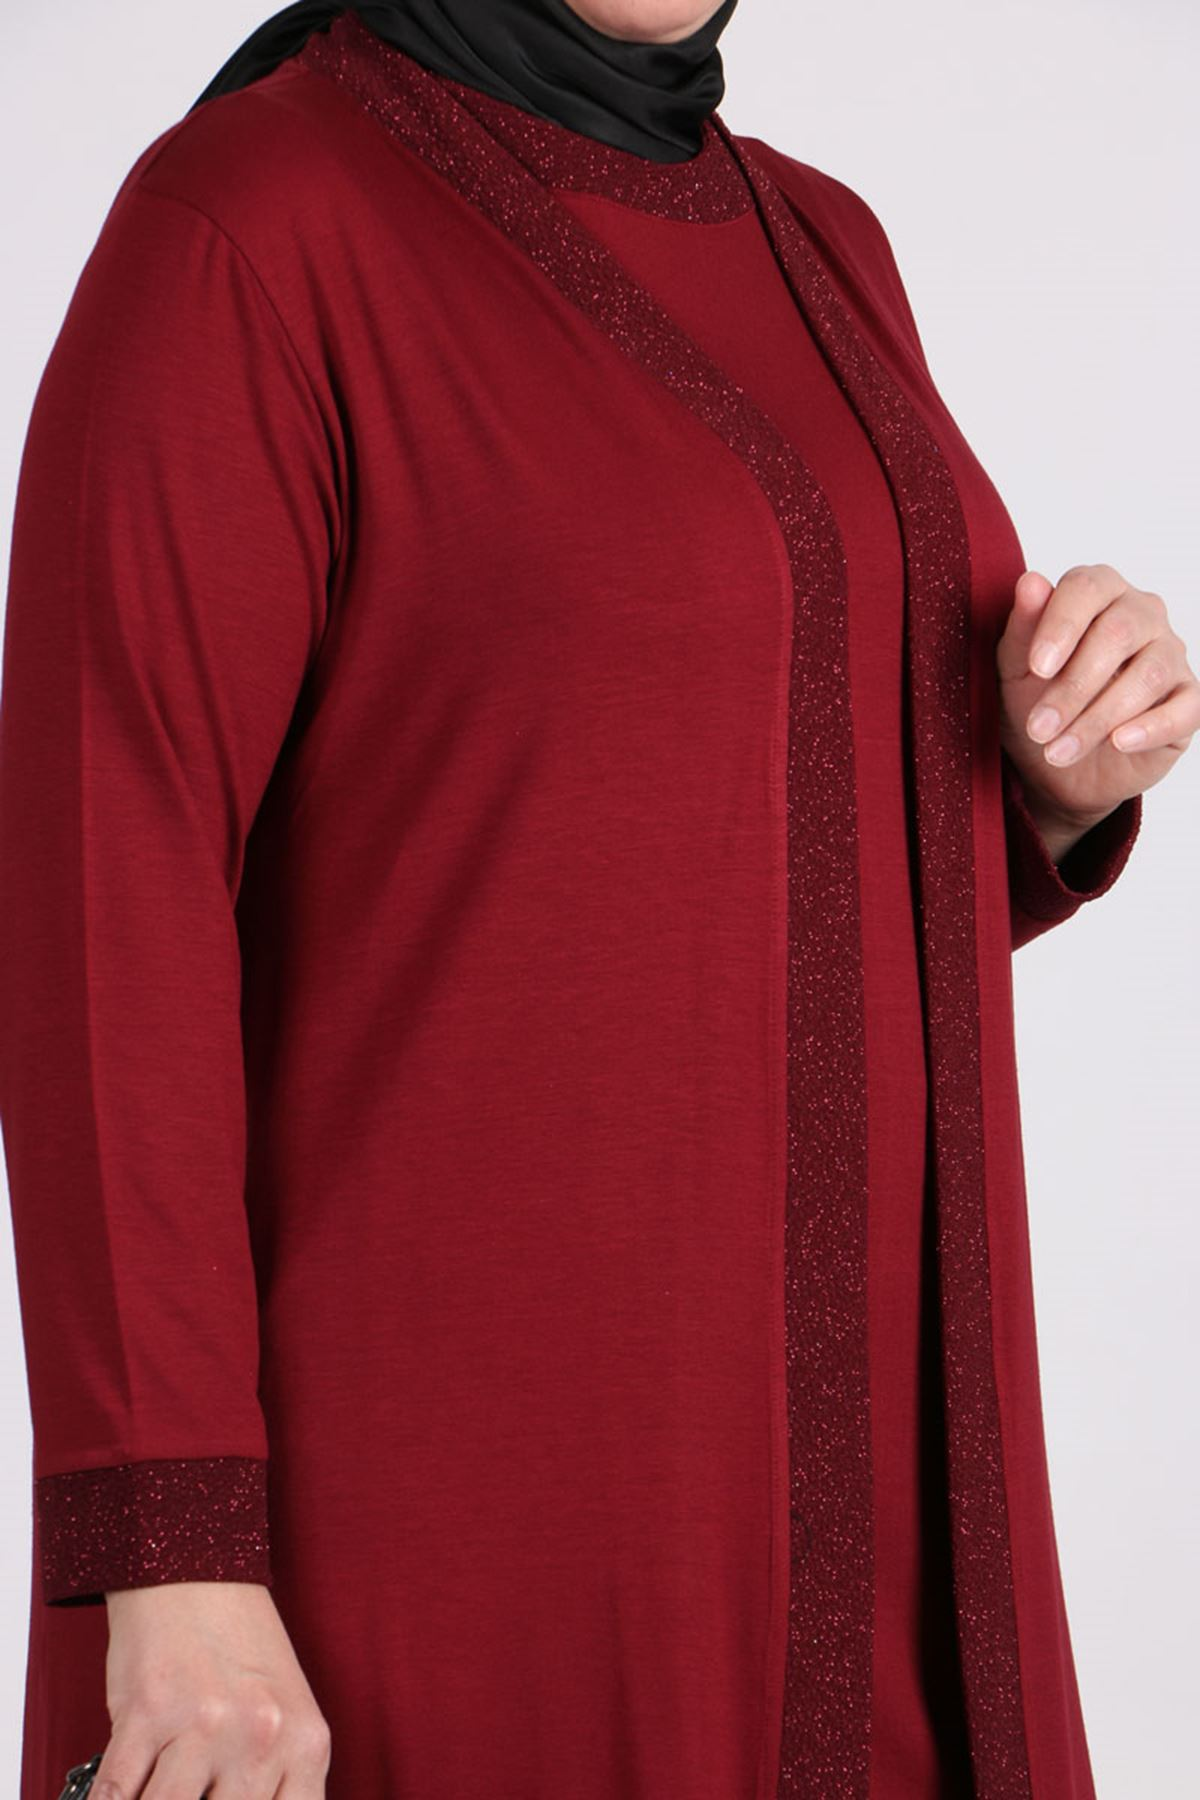 7112 Plus Size Two Piece Set with Tunic and Jacket- Claret Red